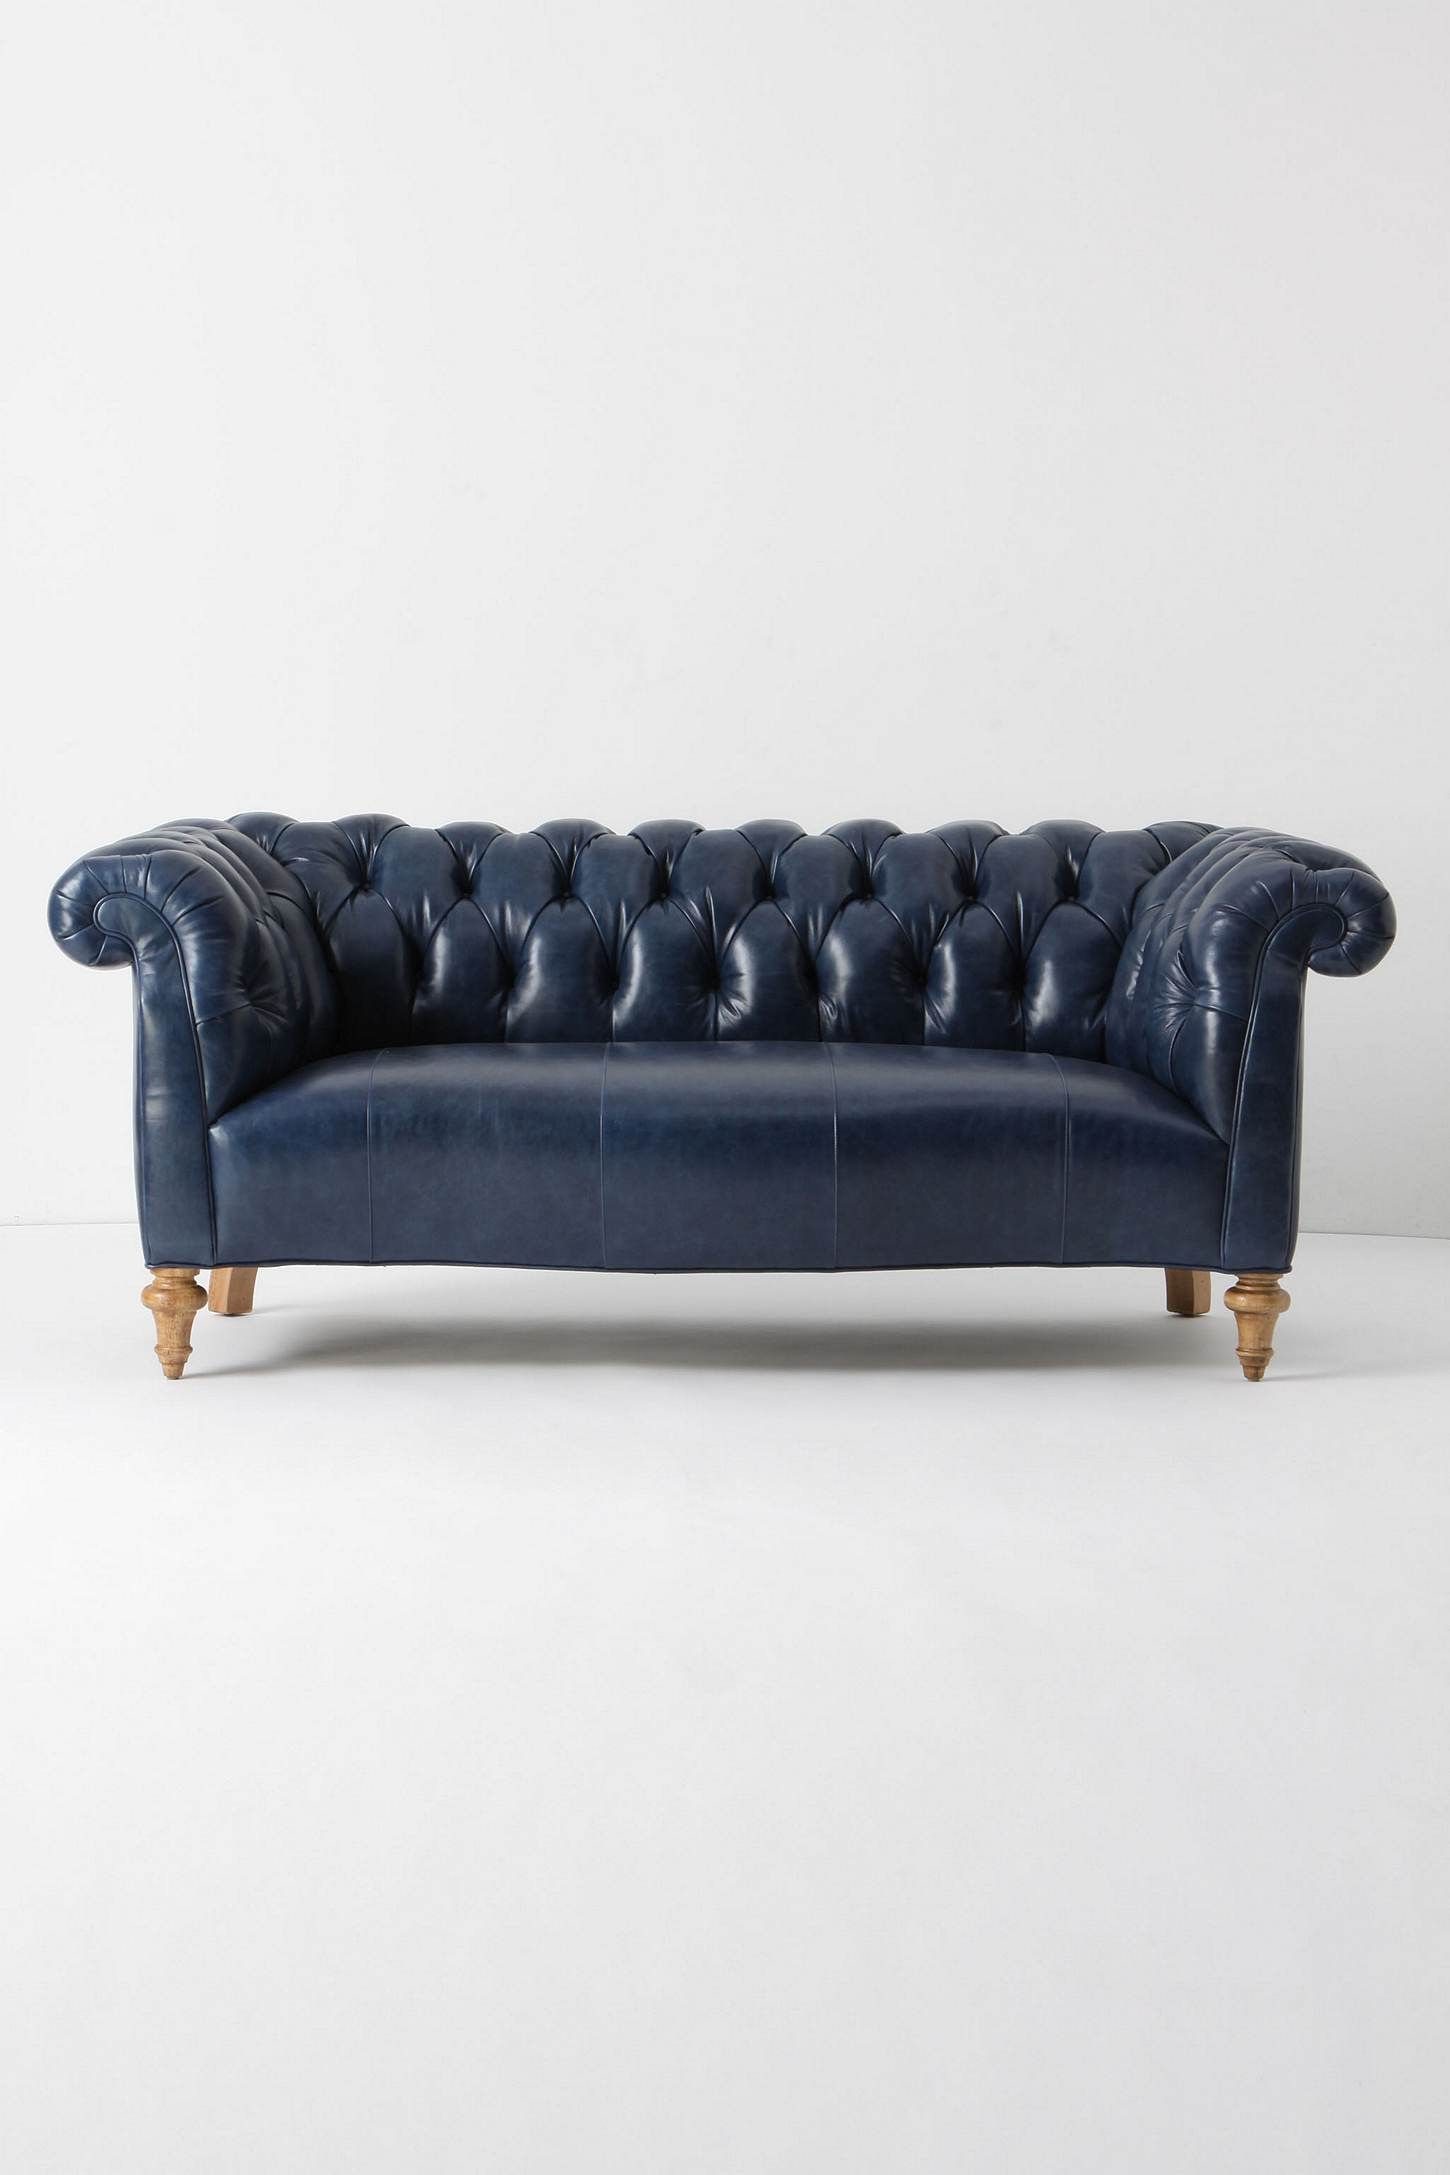 Milo Sofa | For Lounging (Couches, Chairs & Seating) | Pinterest Inside Milo Sofa Chairs (View 6 of 20)